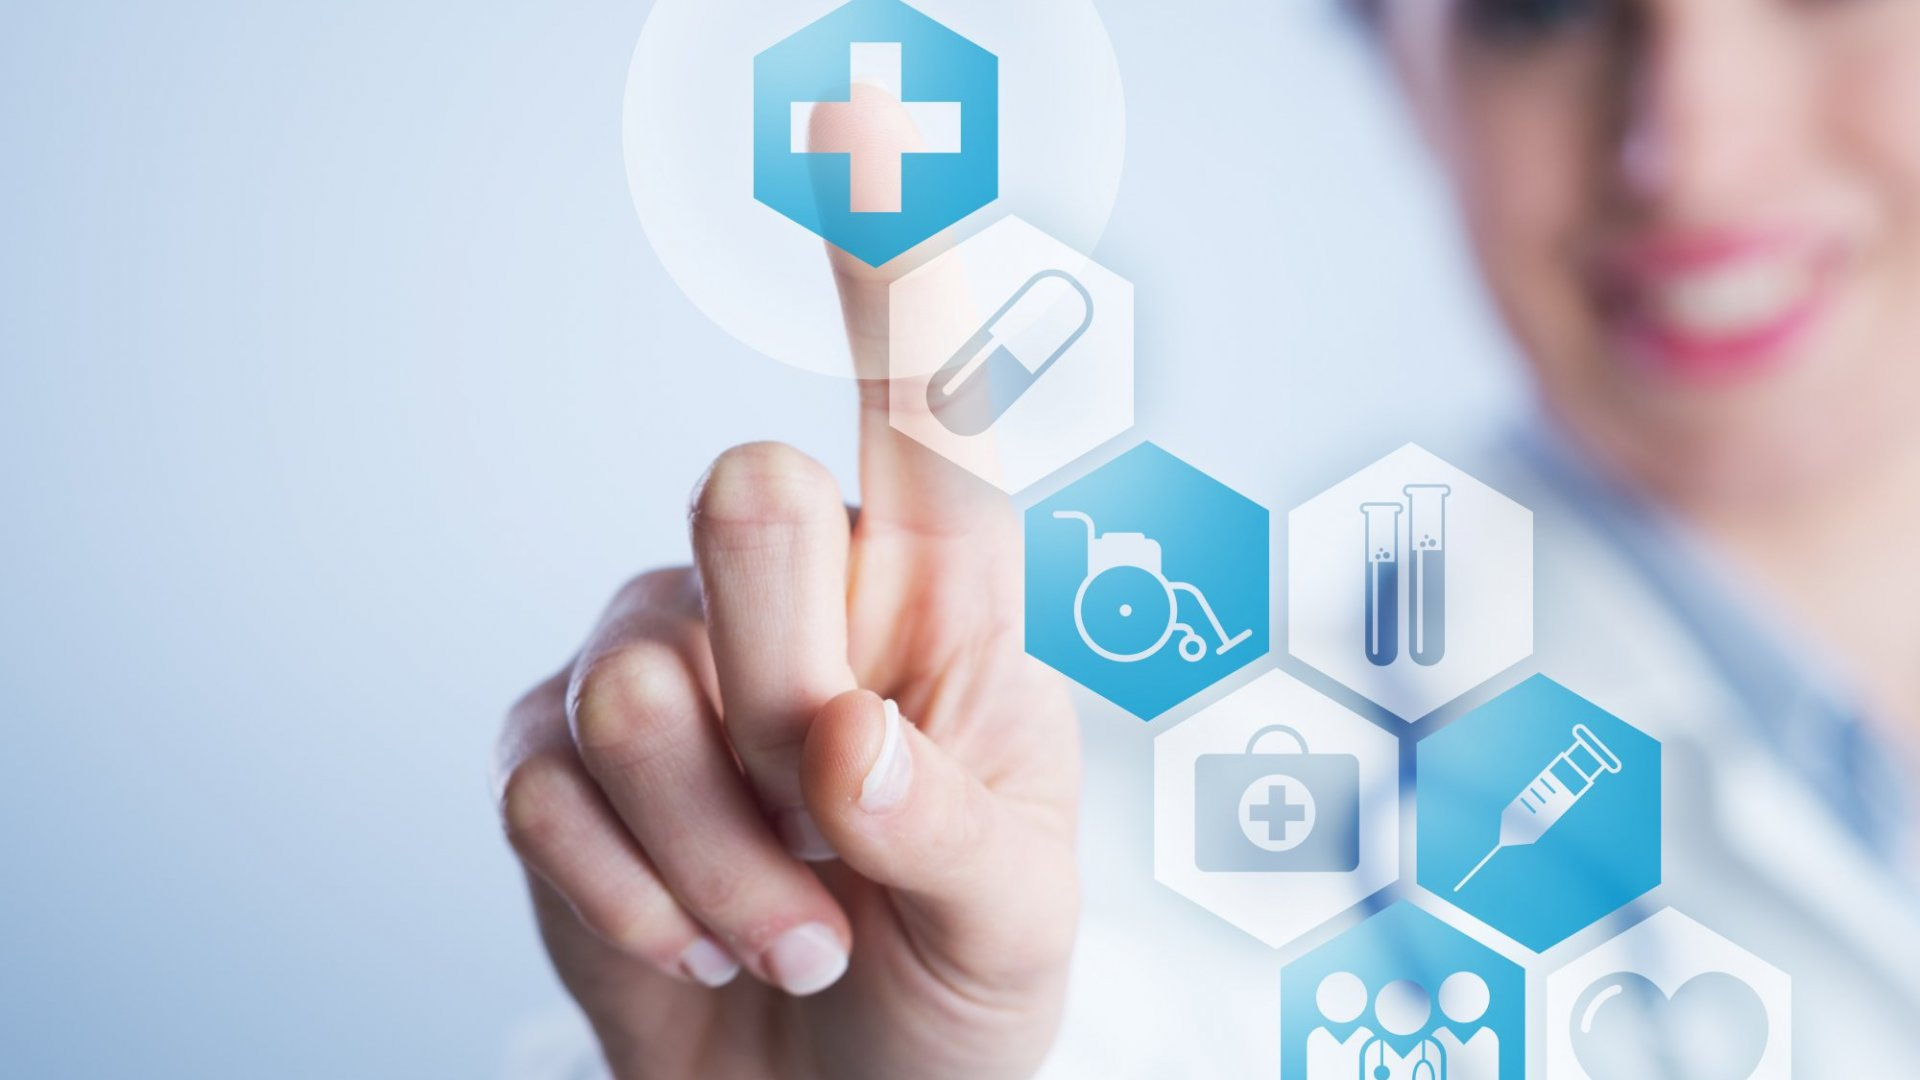 3 Trends in Healthcare Technology that are Upgrading the Industry